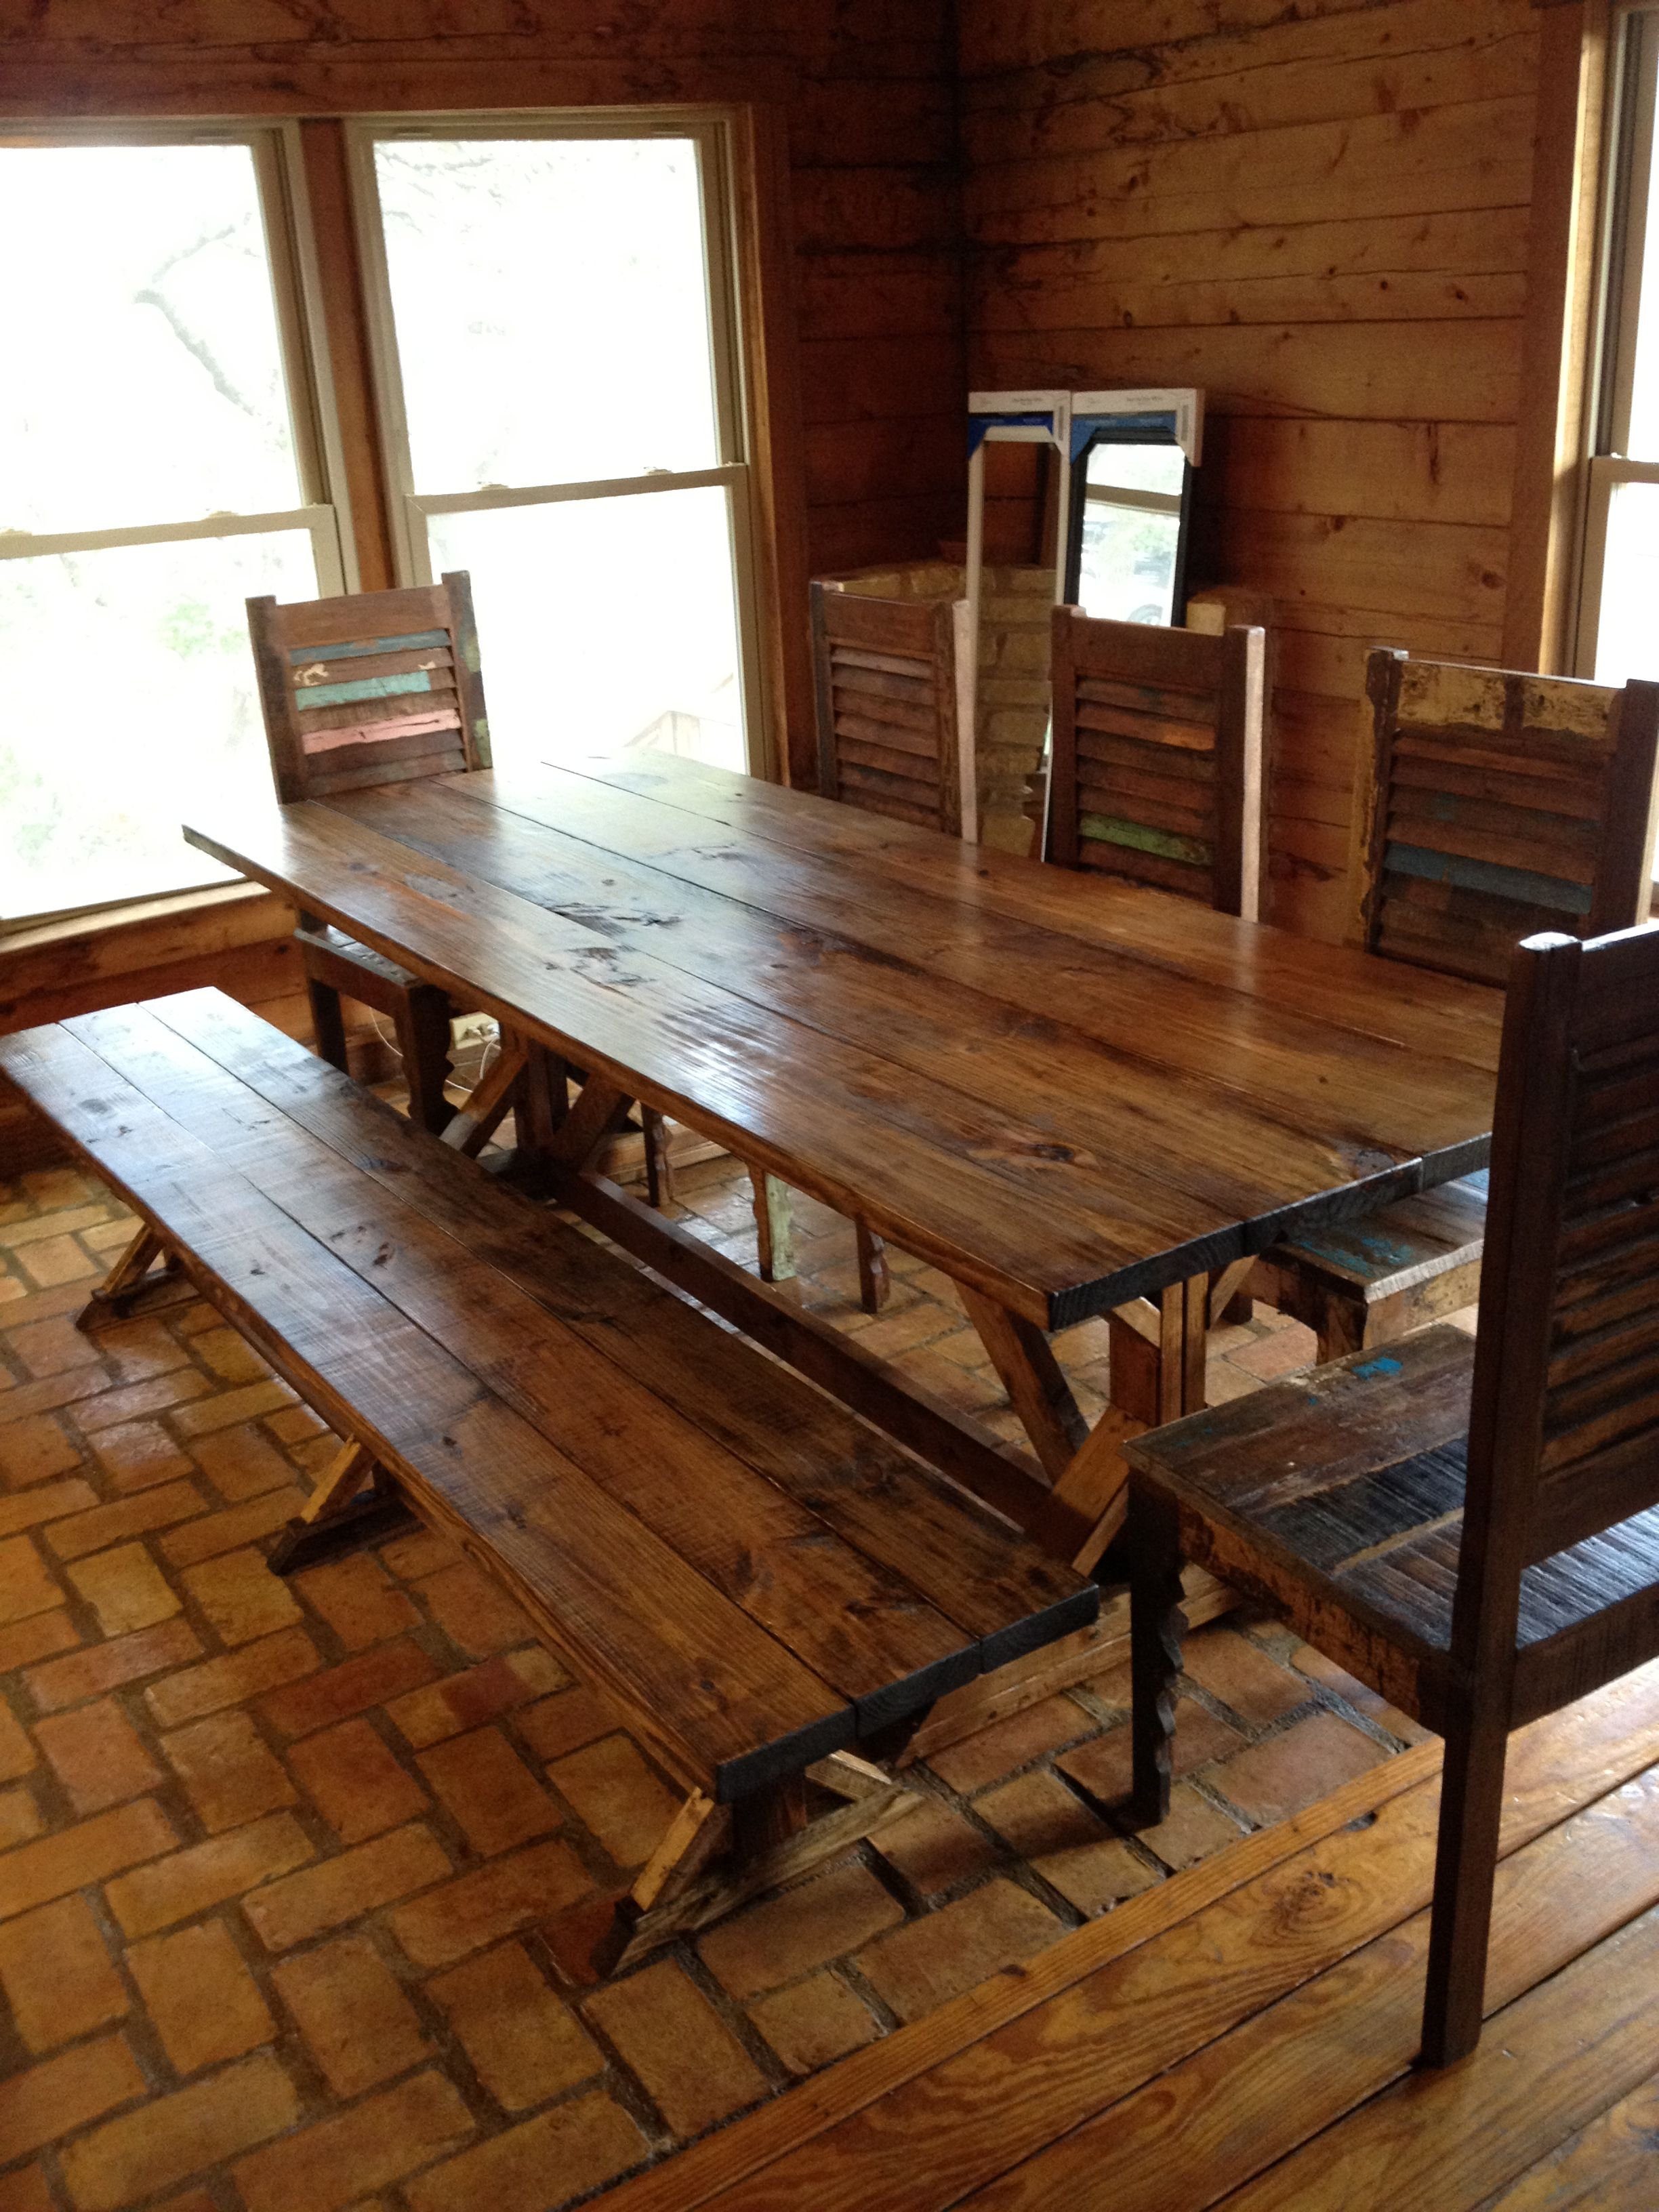 Rustic Dining Table Picnic Style With Bench Seating And Chairs